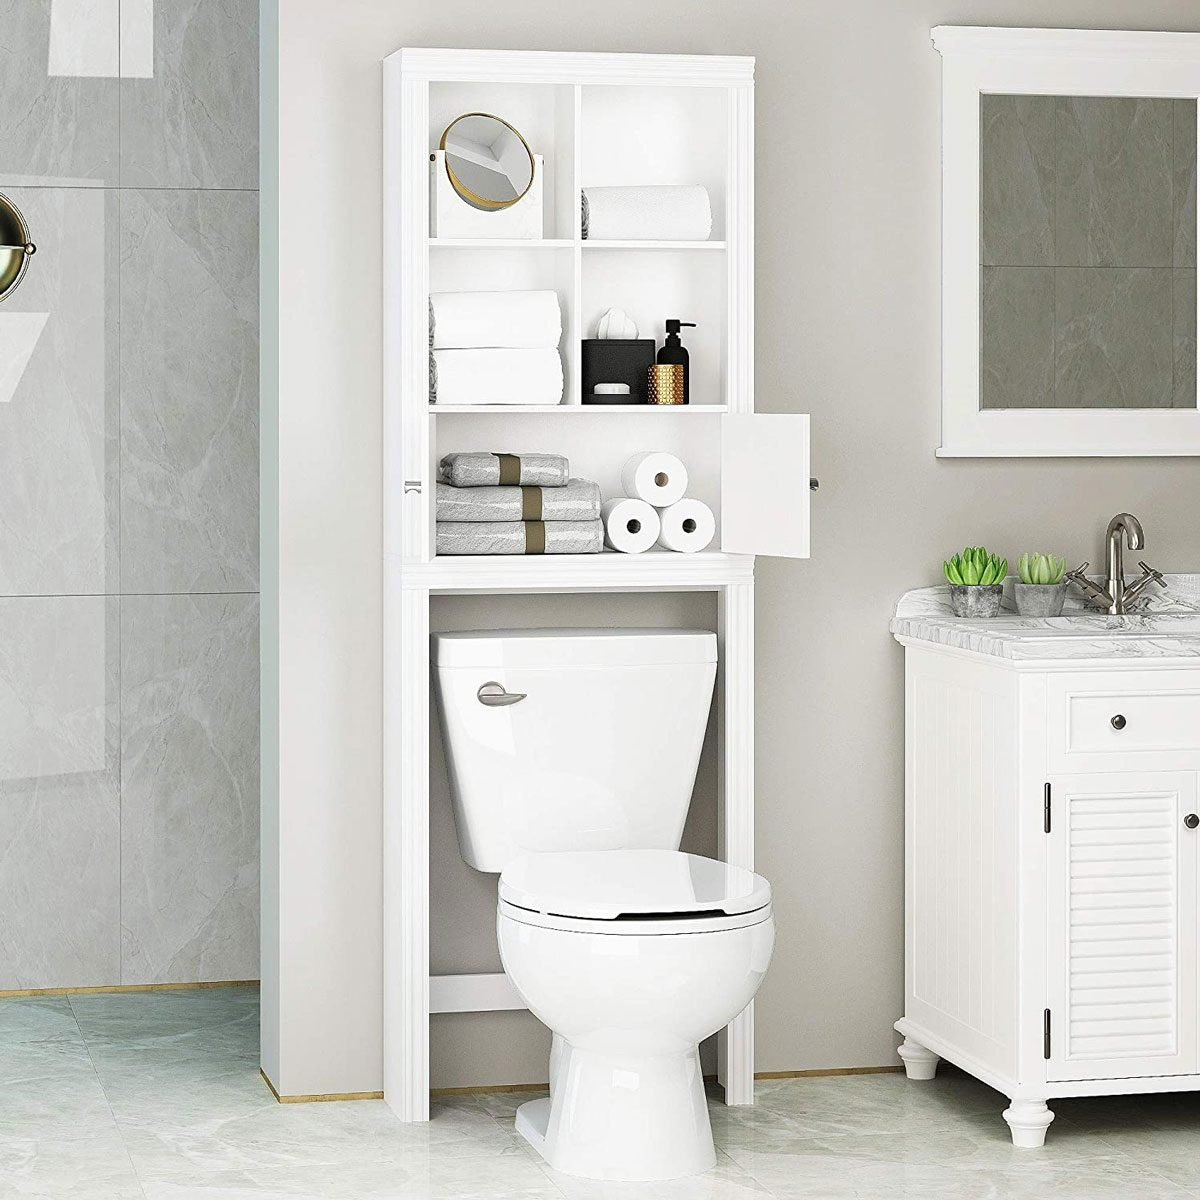 12 Best Storage And Organization Products For Small Bathrooms The Family Handyman